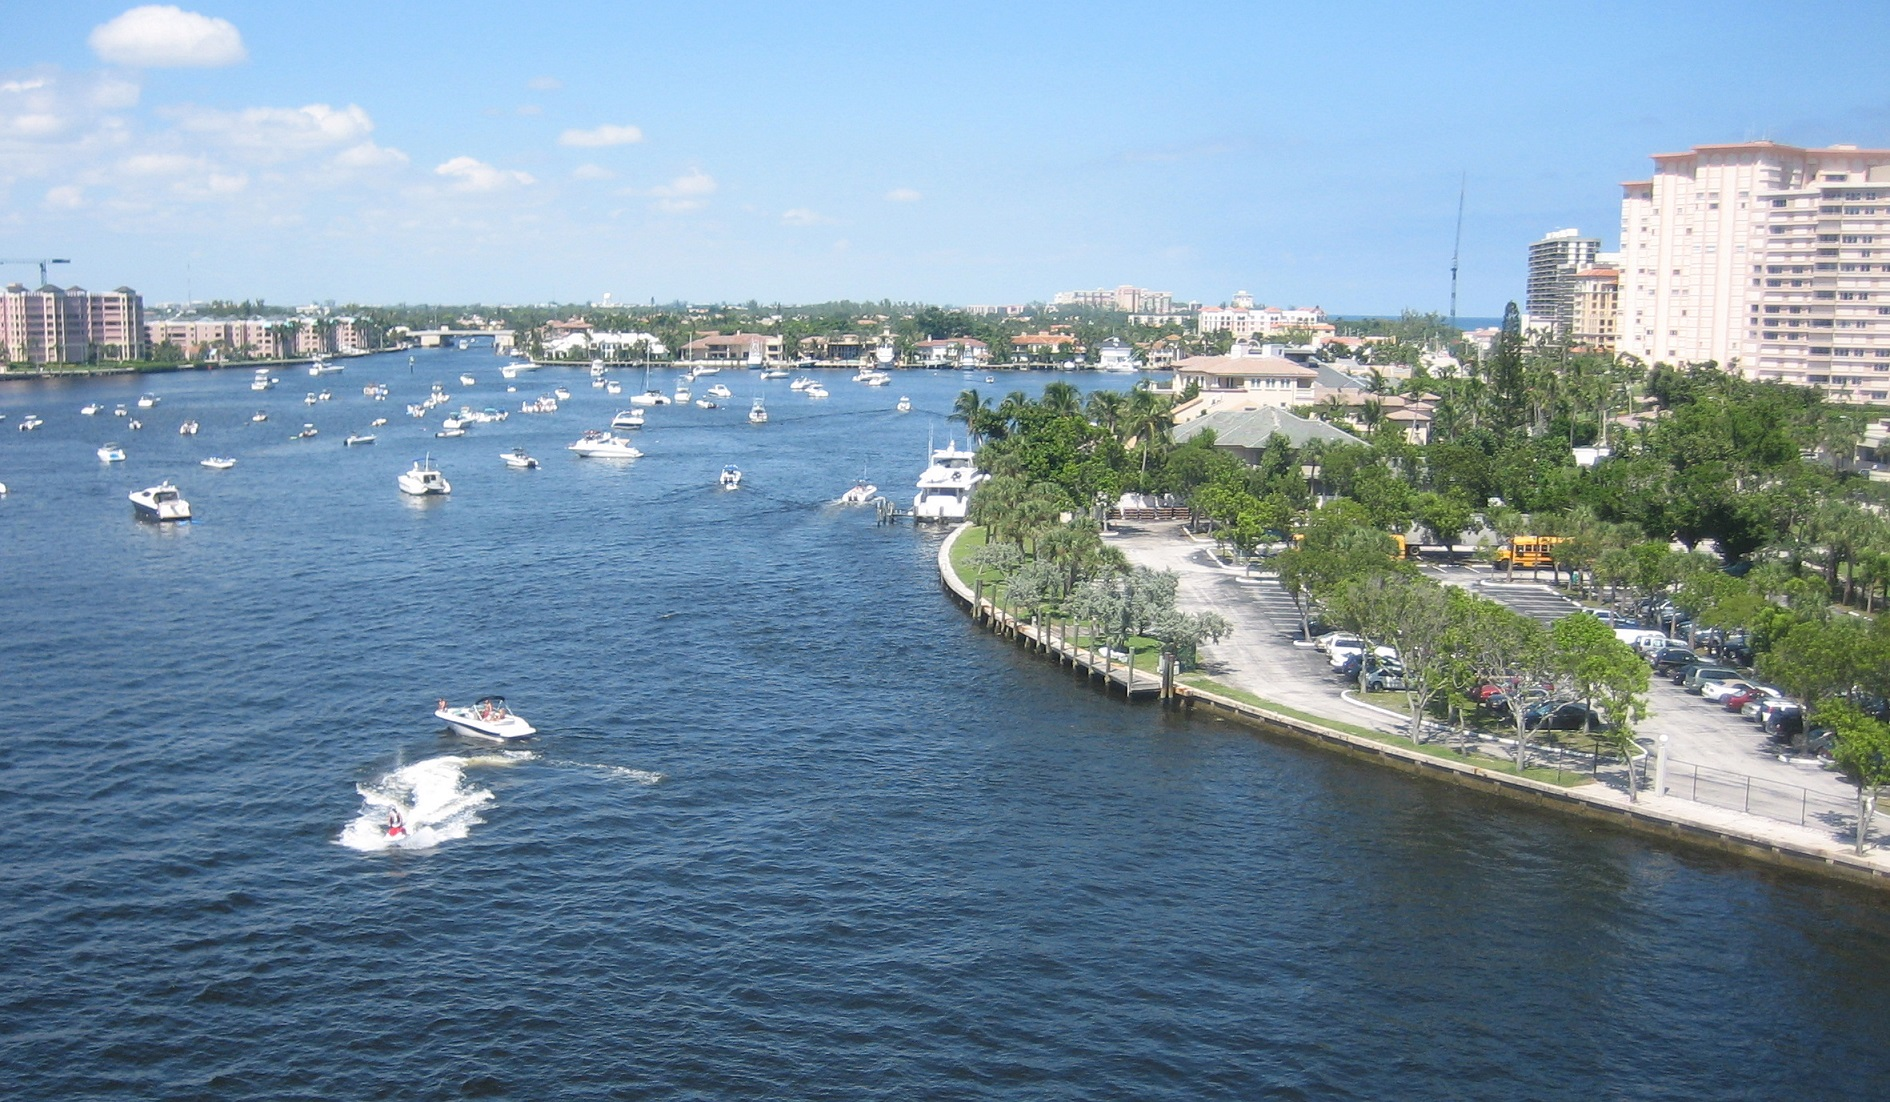 Life in Boca Raton: 15 Reasons Every Day in Boca Raton Is the Best Day Ever